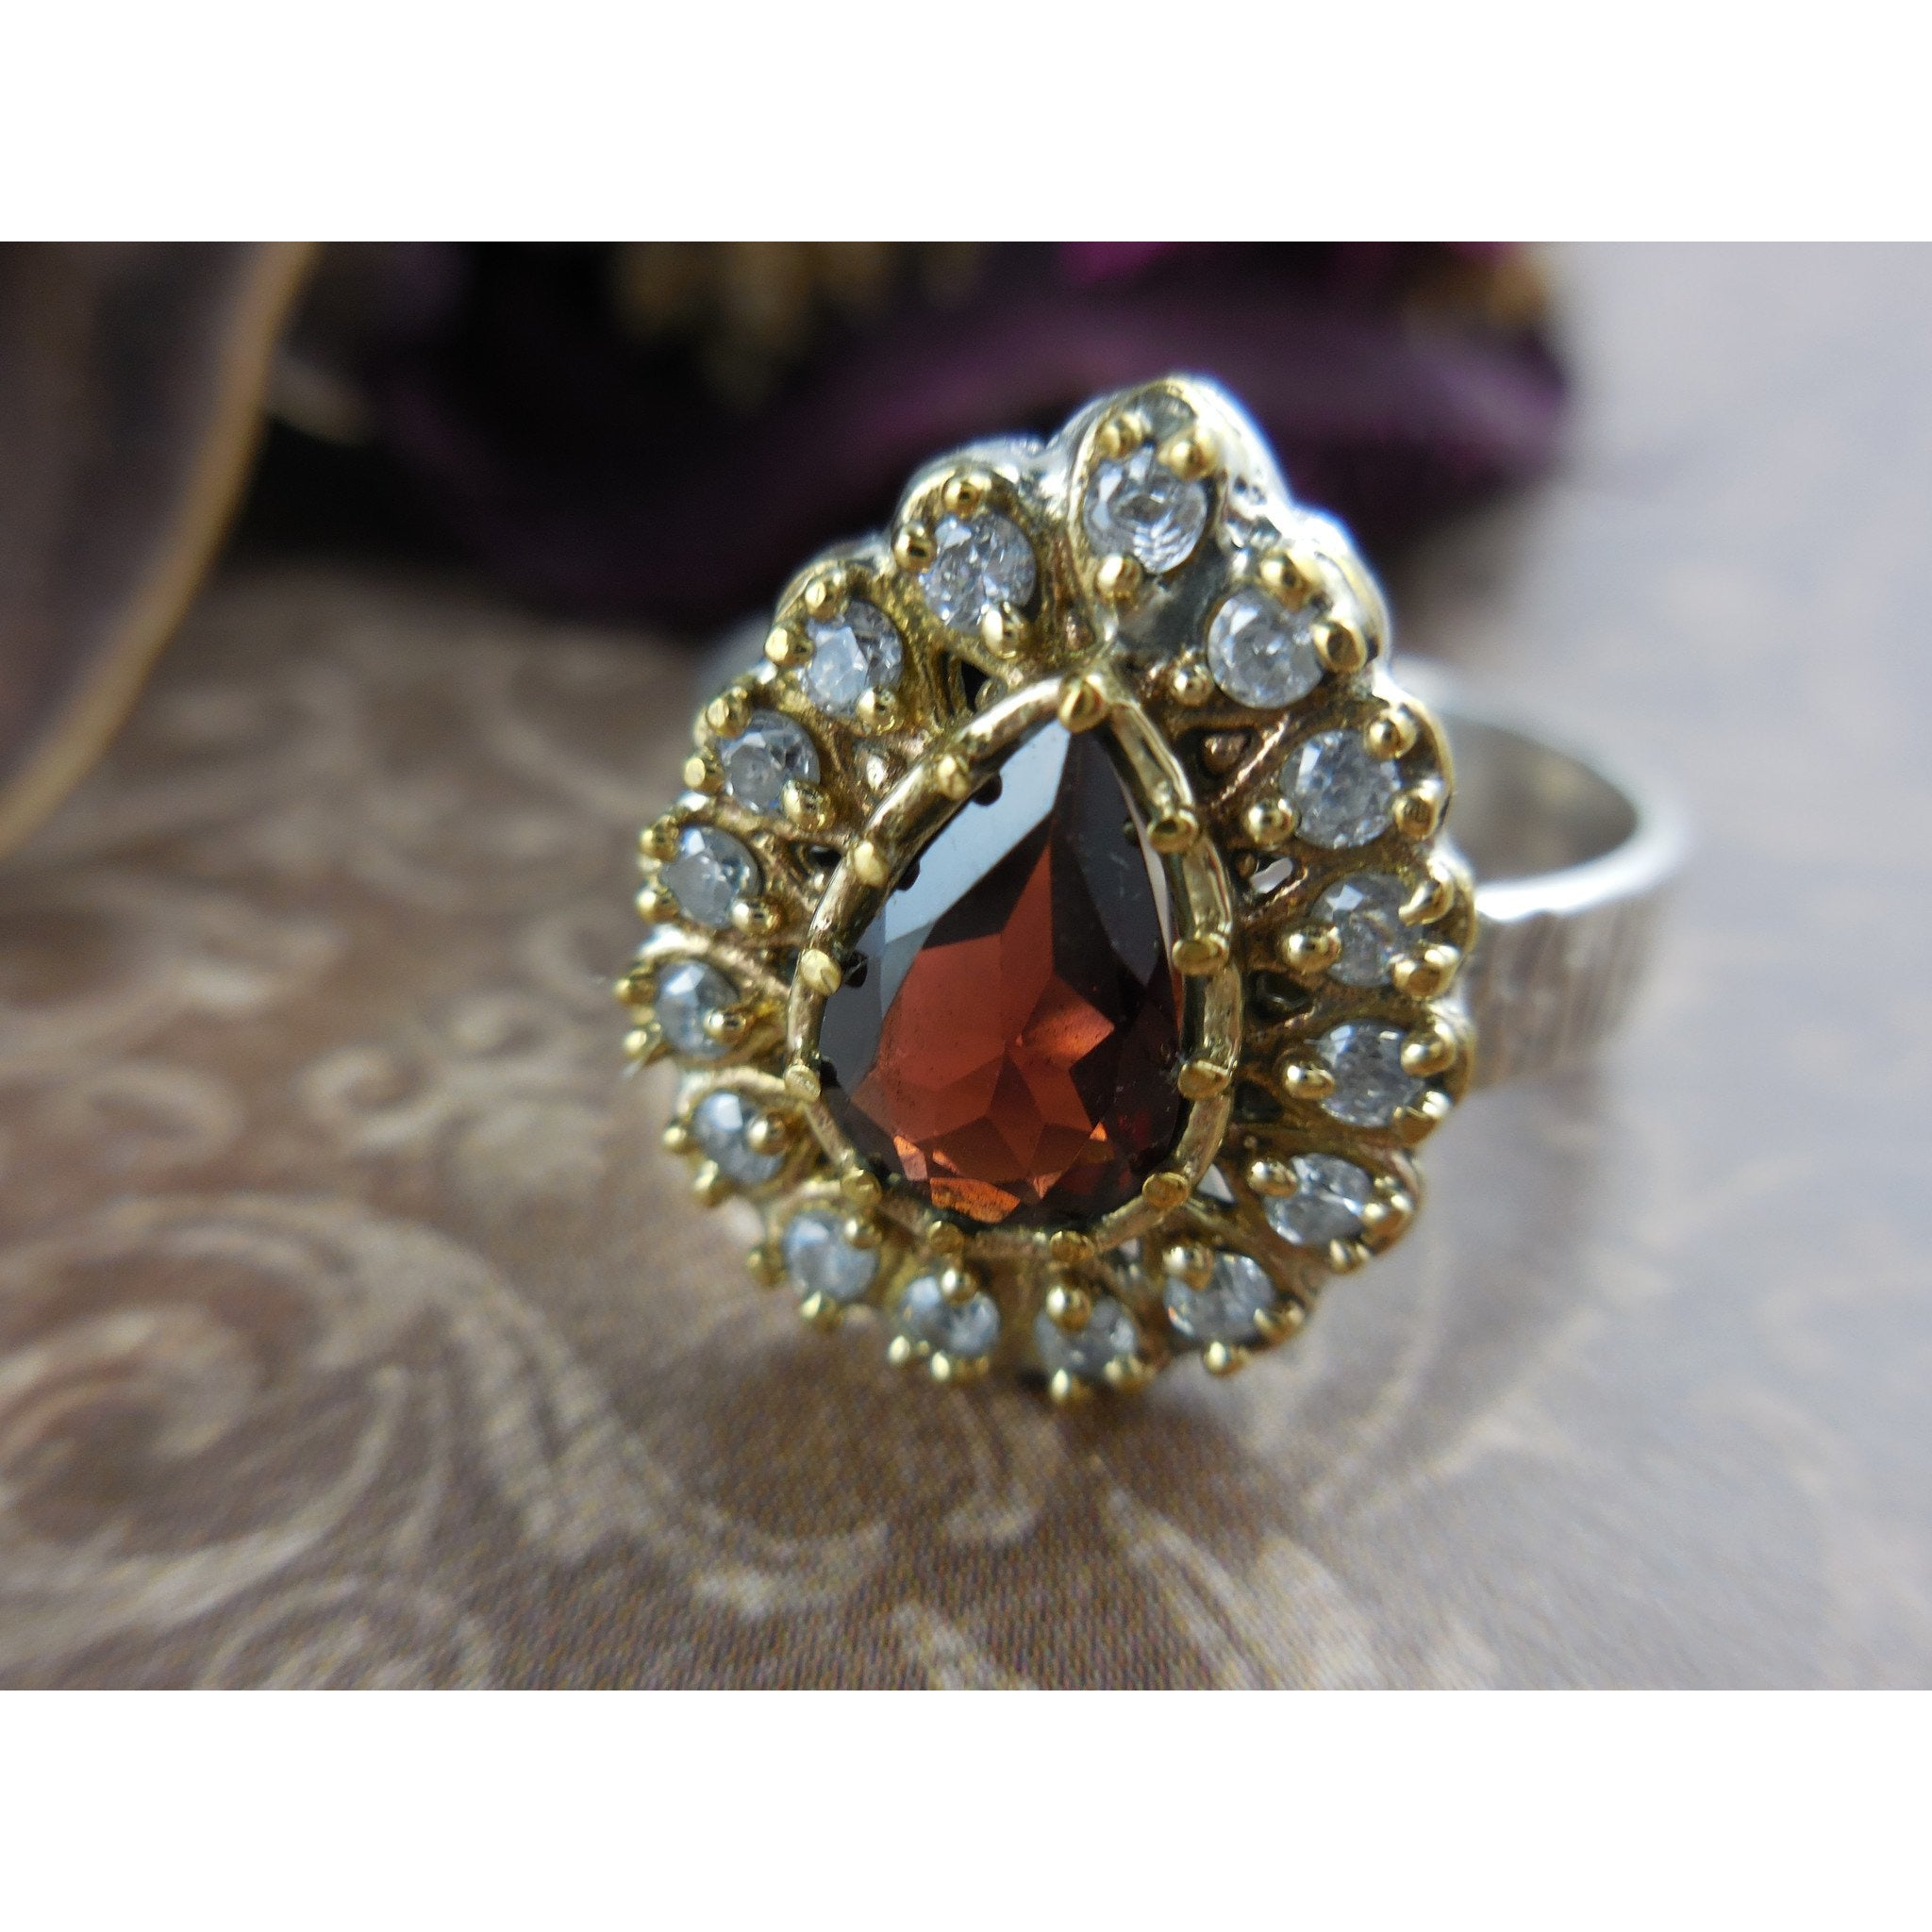 Garnet Gemstone and Sterling Silver & Brass Ring - Size 9